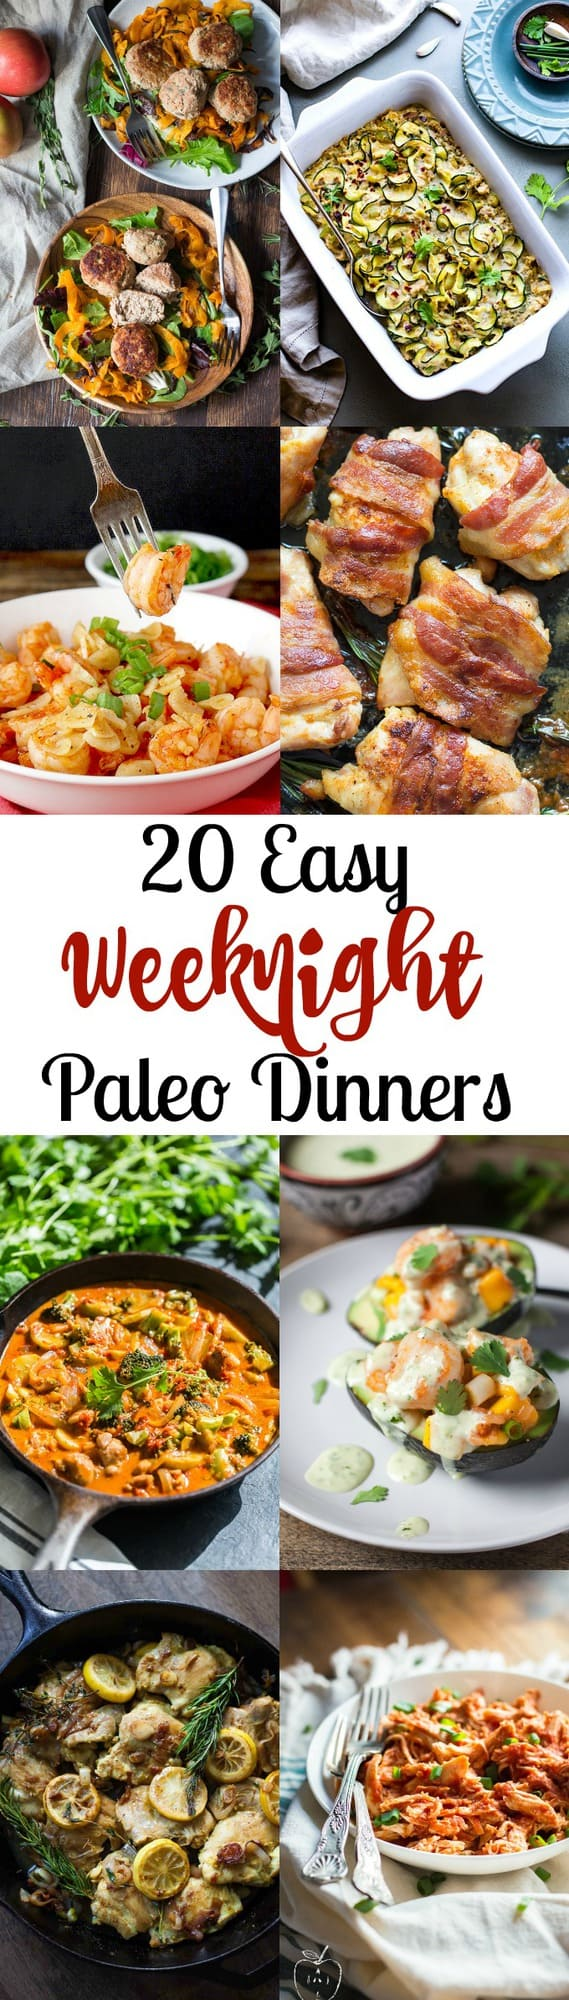 20 easy paleo dinners for weeknights the paleo running momma 20 easy weeknight paleo dinners with many quick forumfinder Images